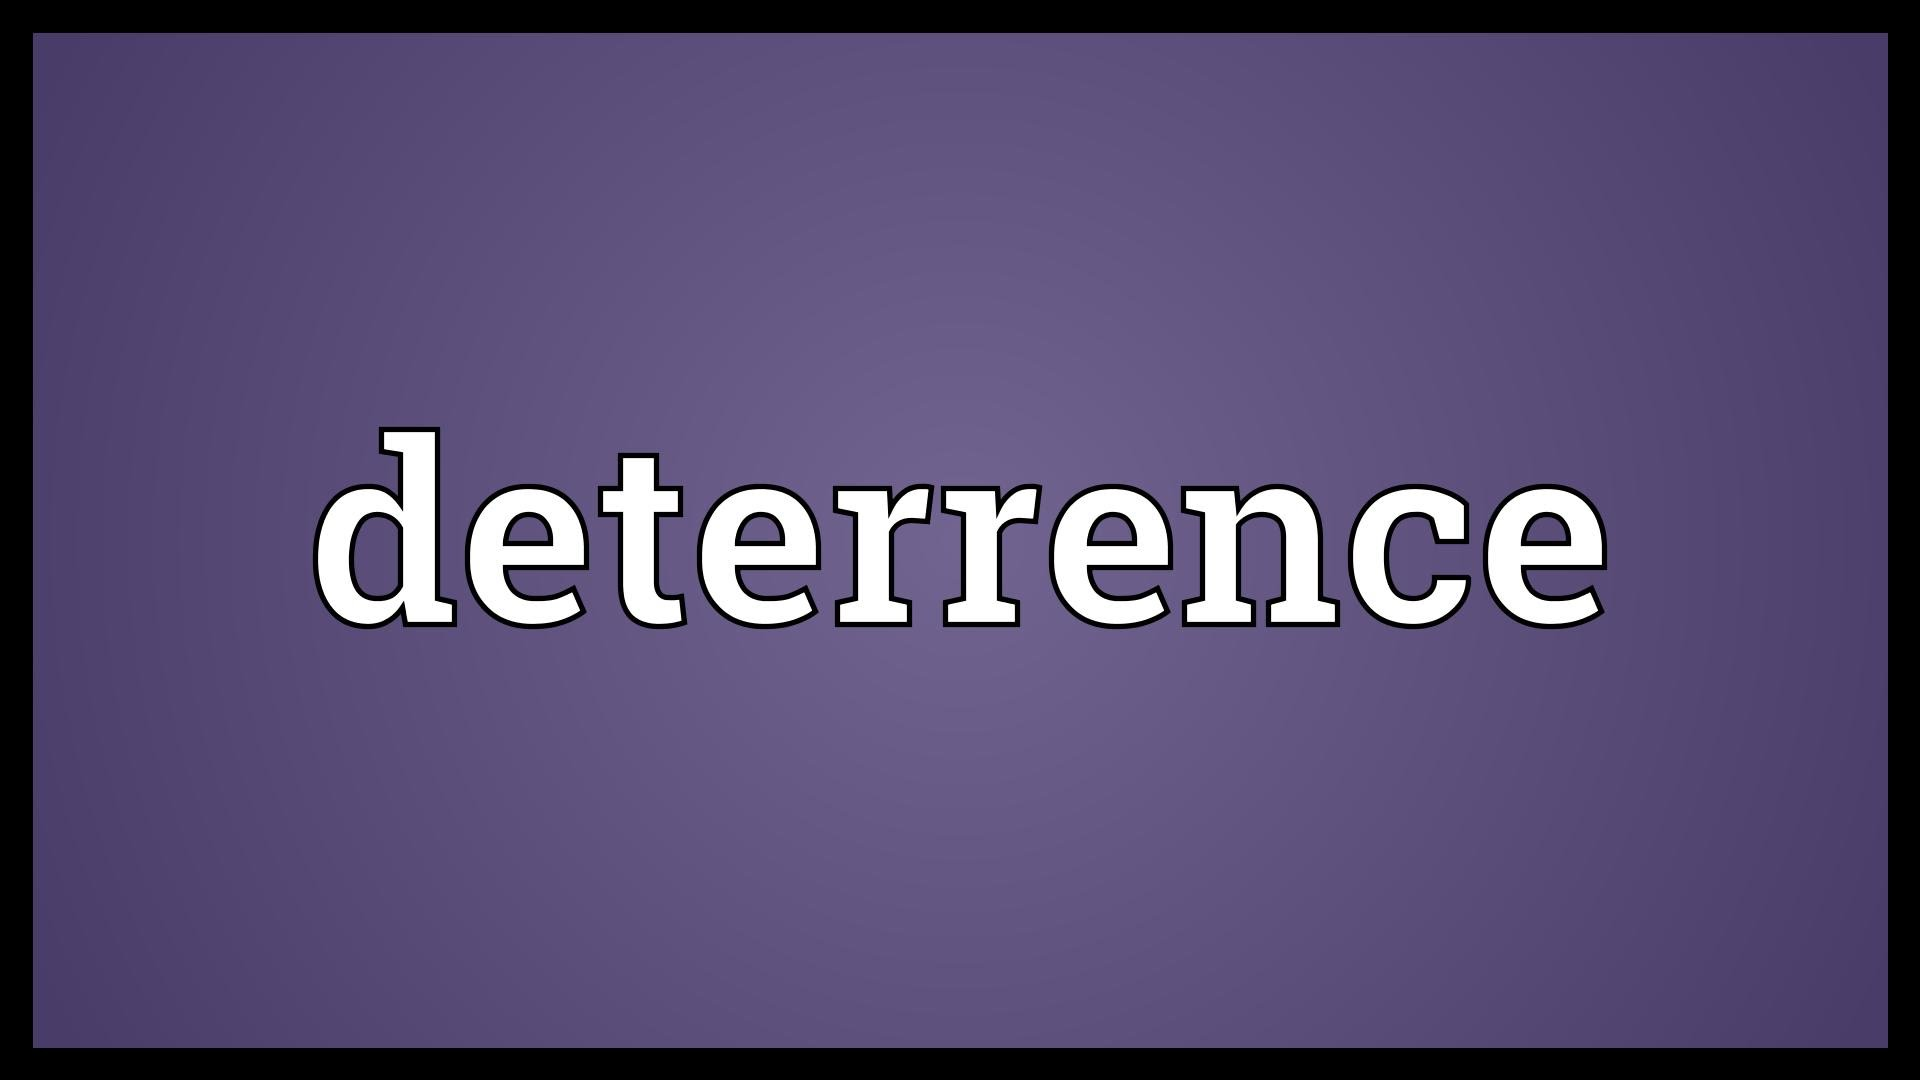 detterence Deterrence is a hunter ability learned at level 78 it reduces all damage taken by 30% and causes all melee, ranged and spell attacks against the hunter to be deflected, but leaves the hunter unable to attack for the duration.